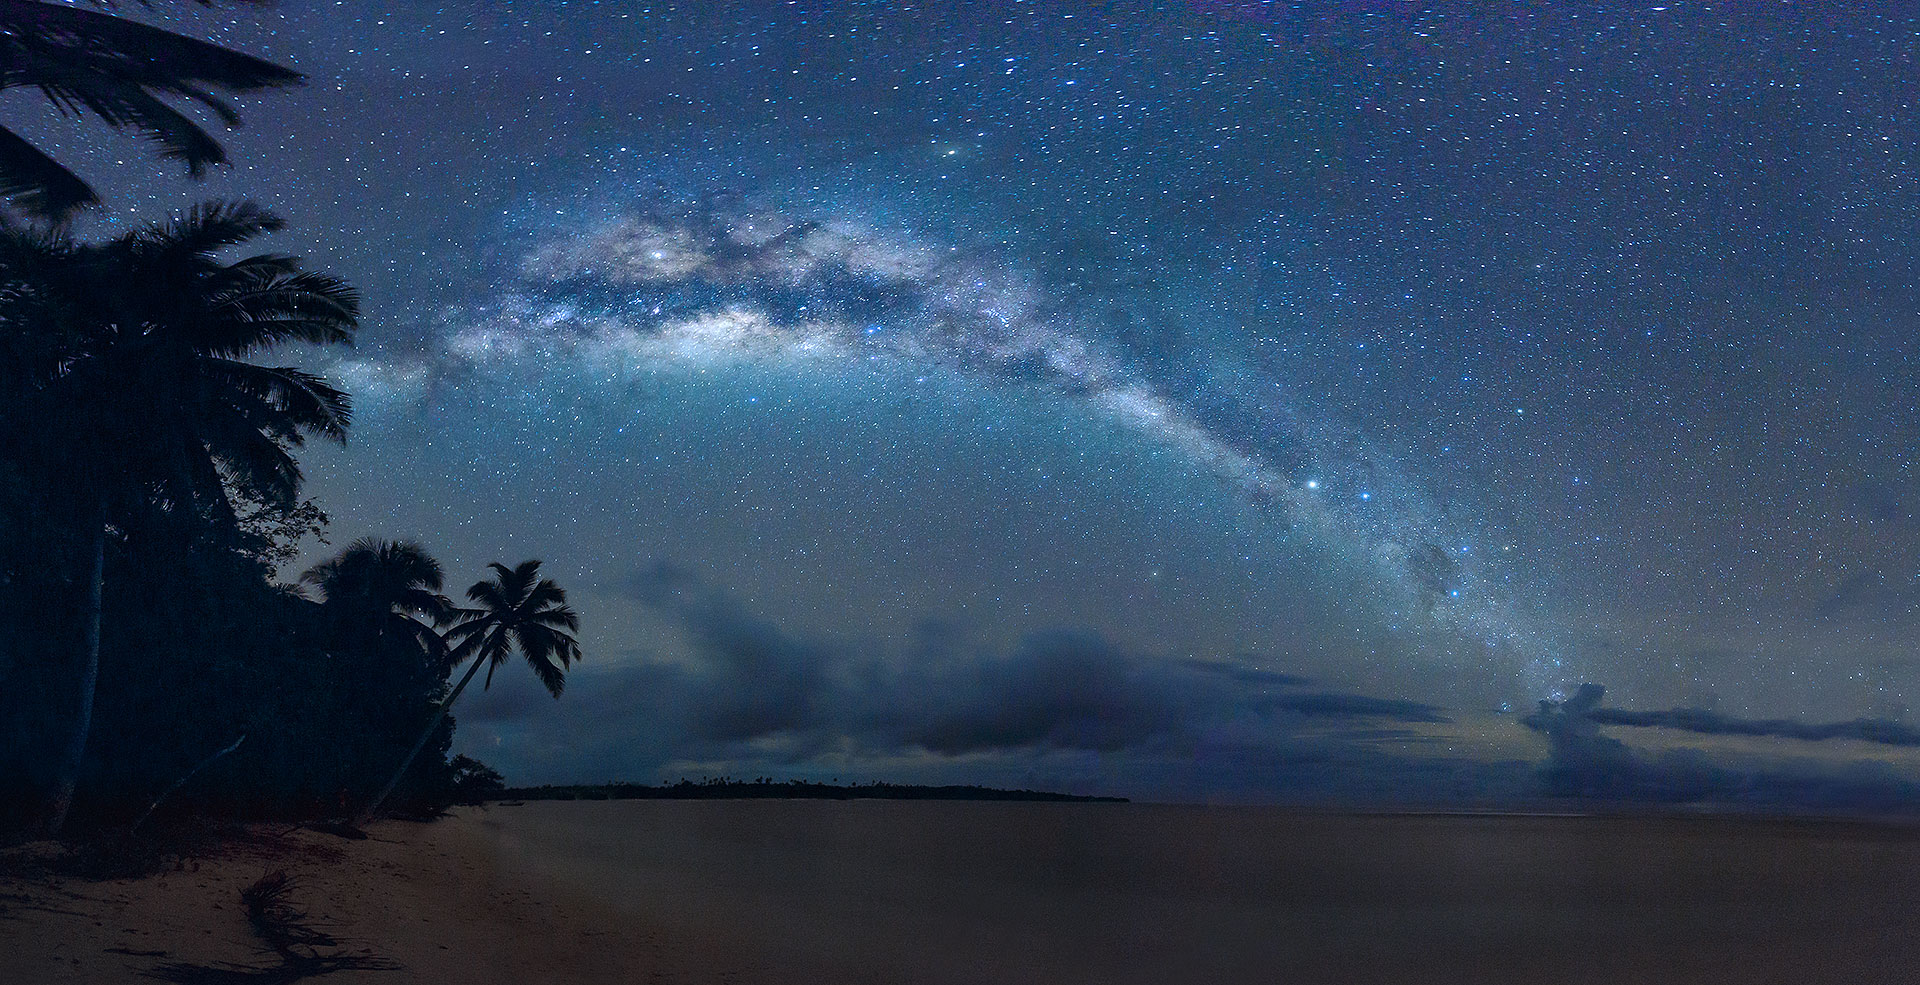 Night Photography Portfolio: The Milky Way, Astrophotography, and Stars